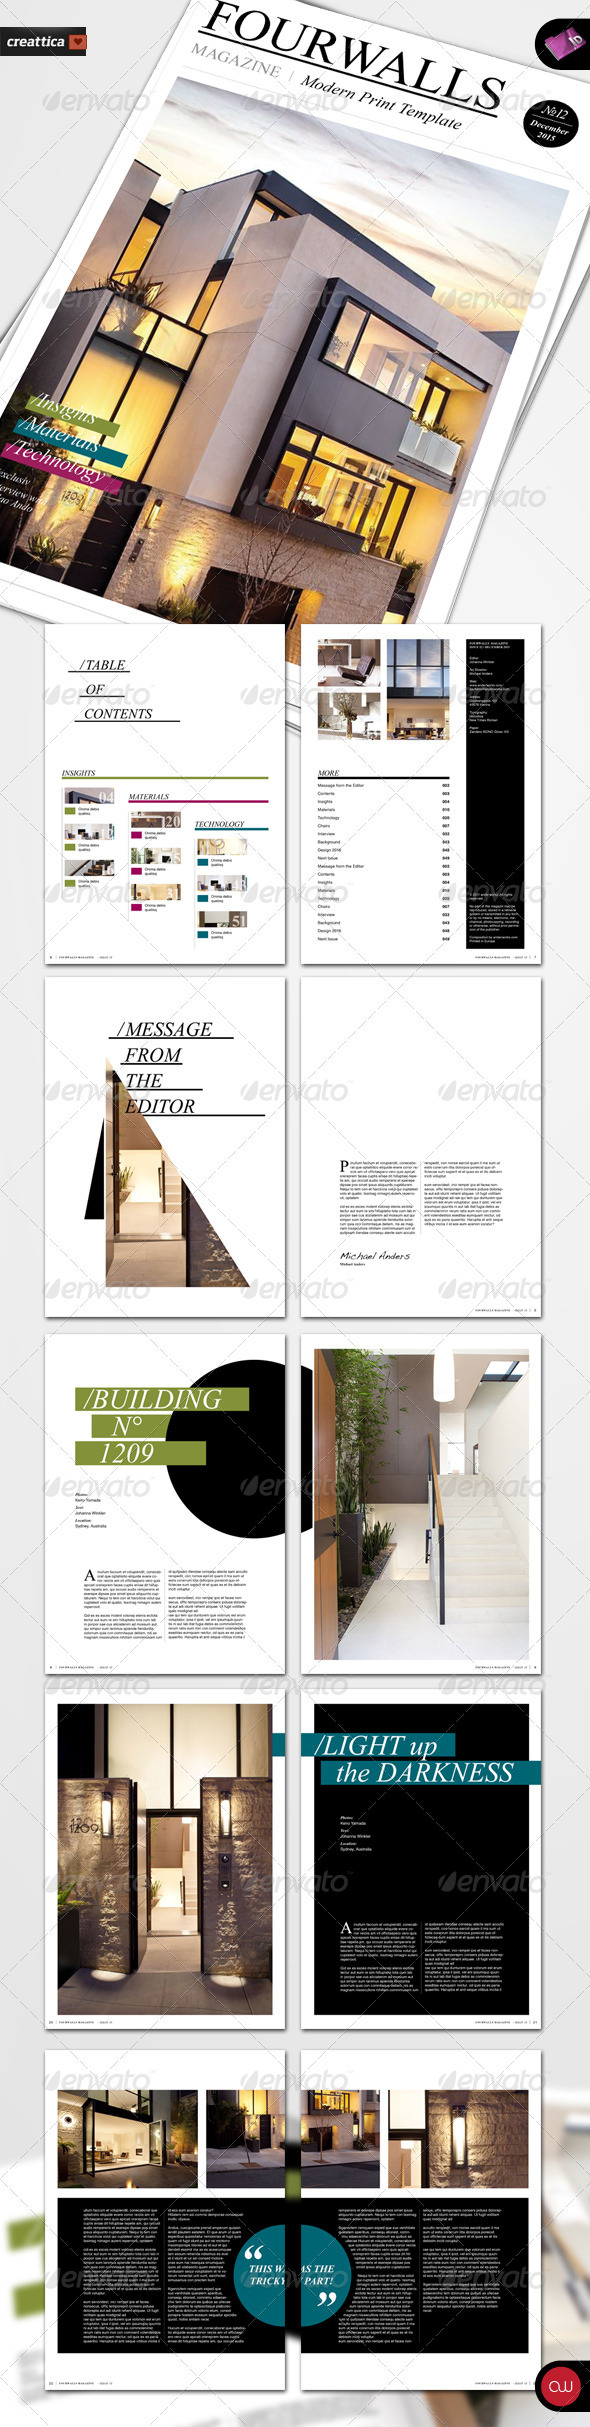 Modern Magazine Template - Vol.1 - Magazines Print Templates